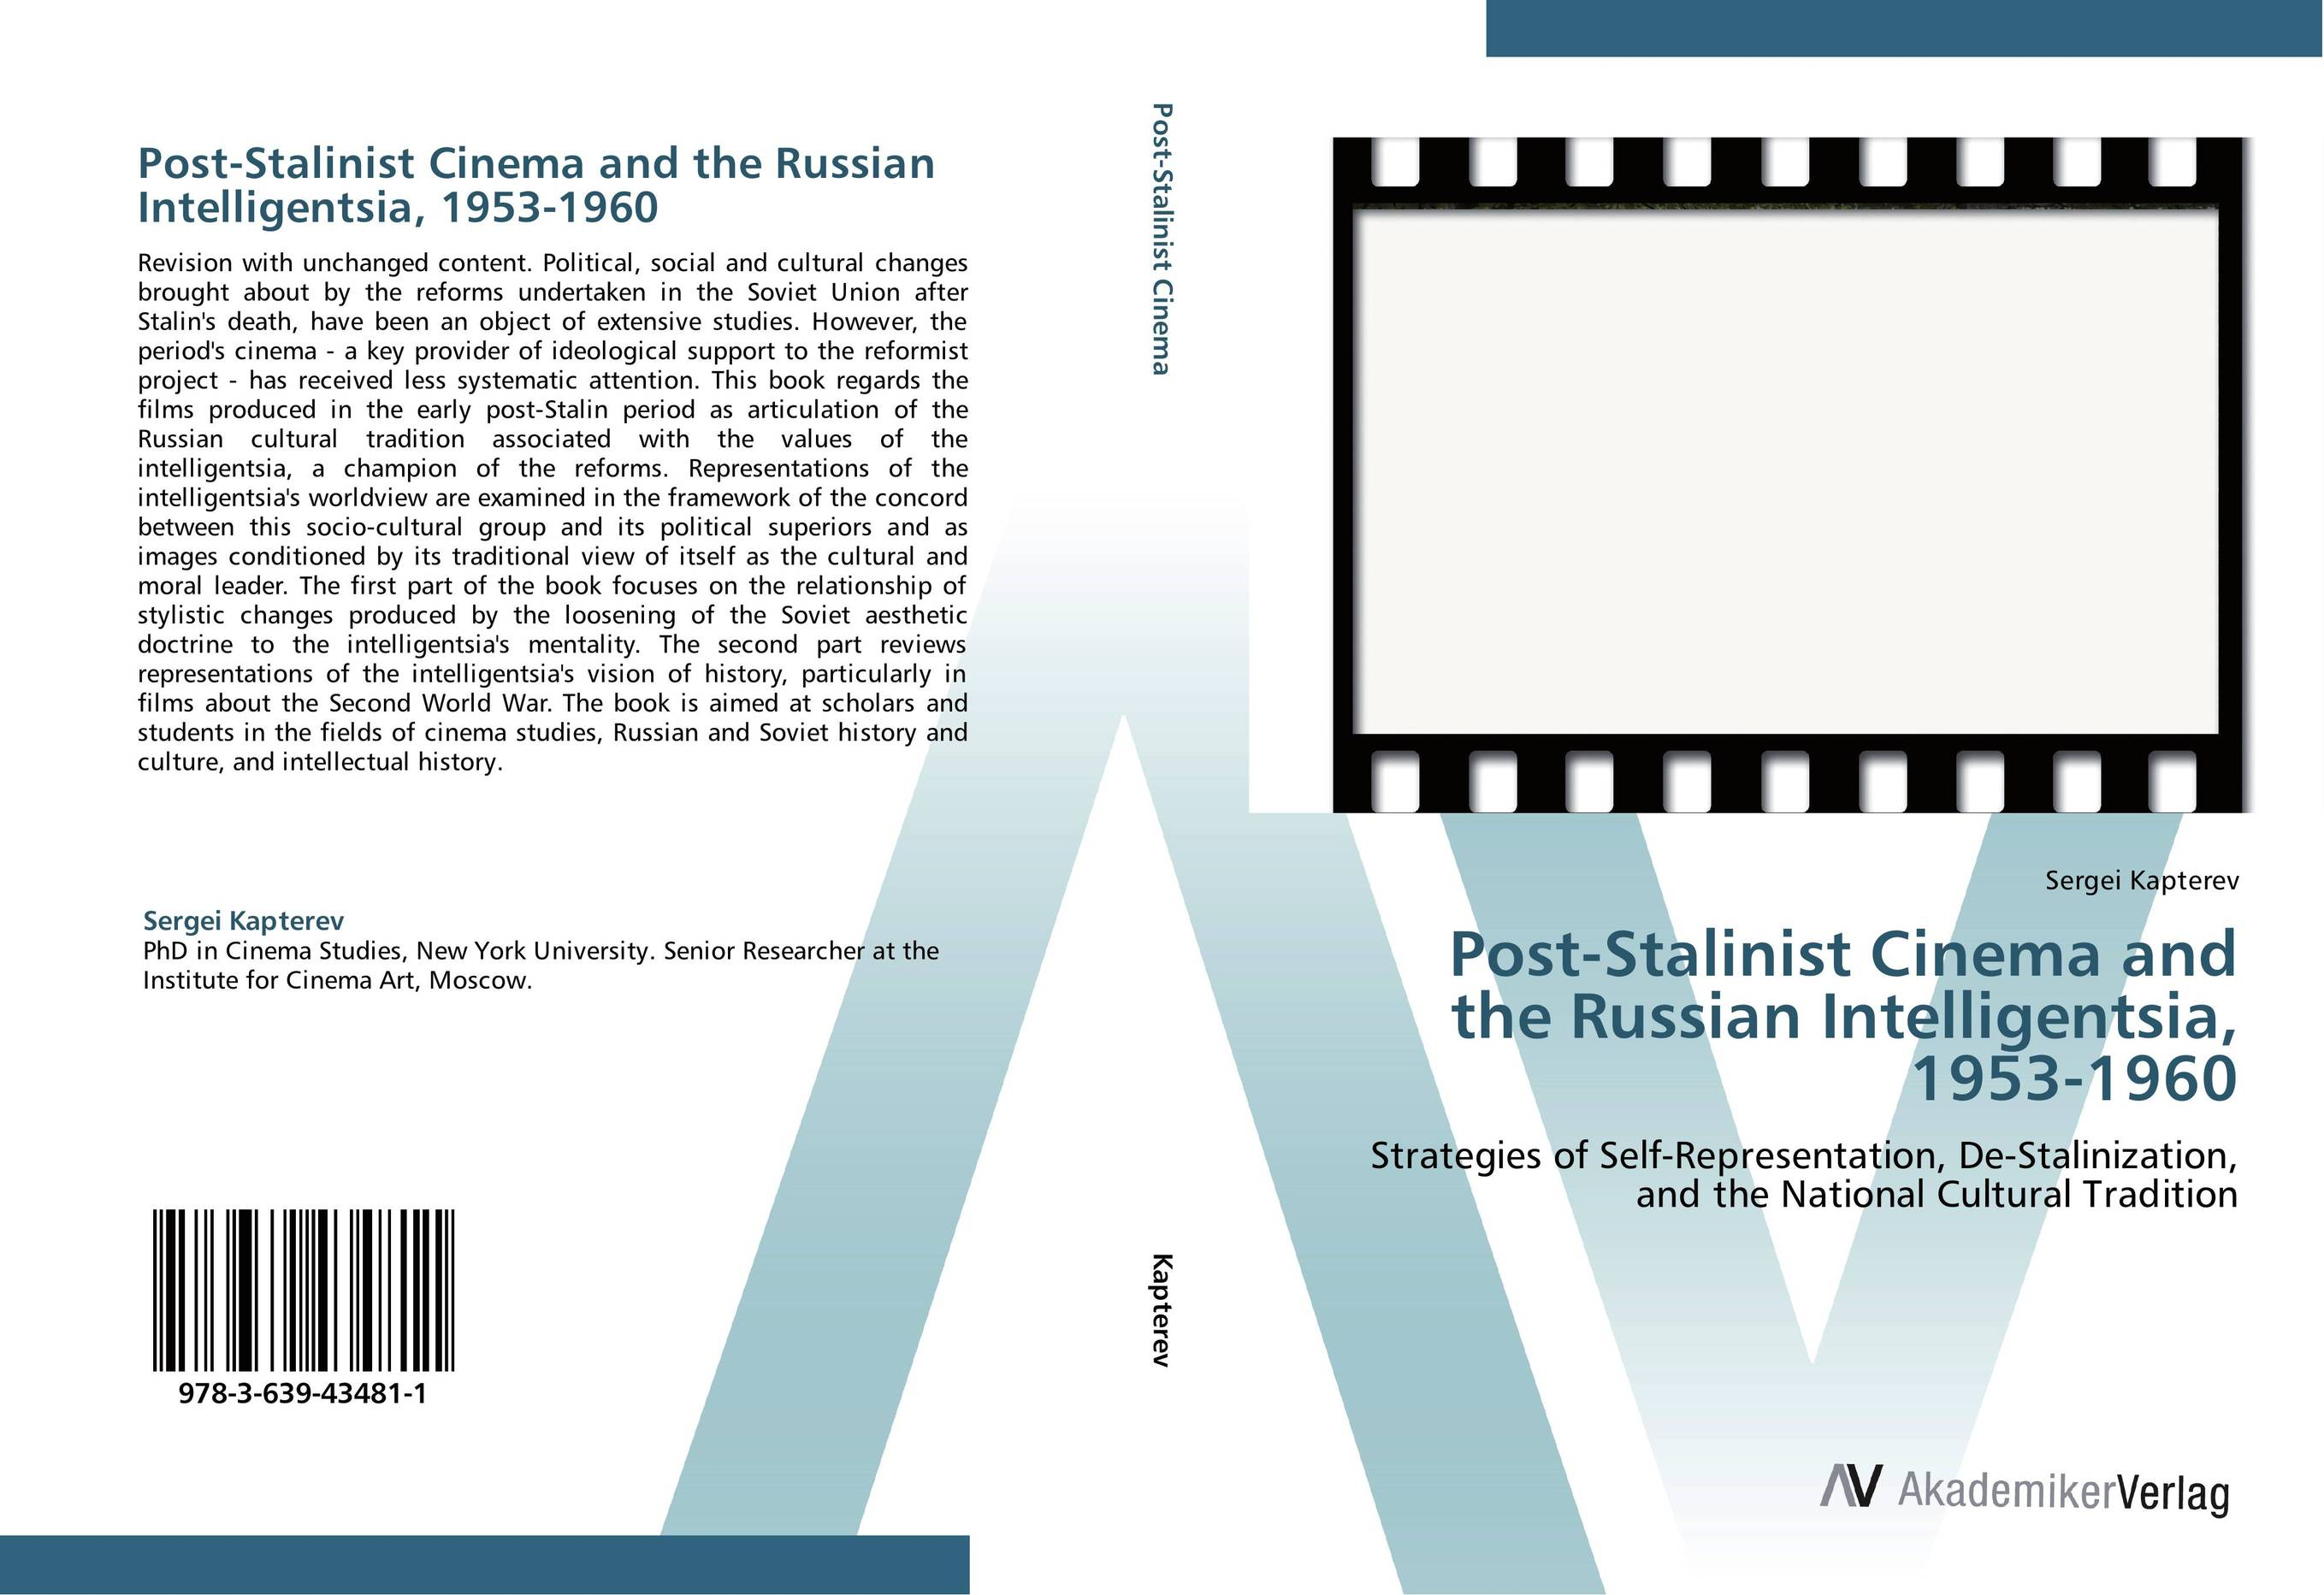 Post-Stalinist Cinema and the Russian Intelligentsia, 1953-1960 the heir